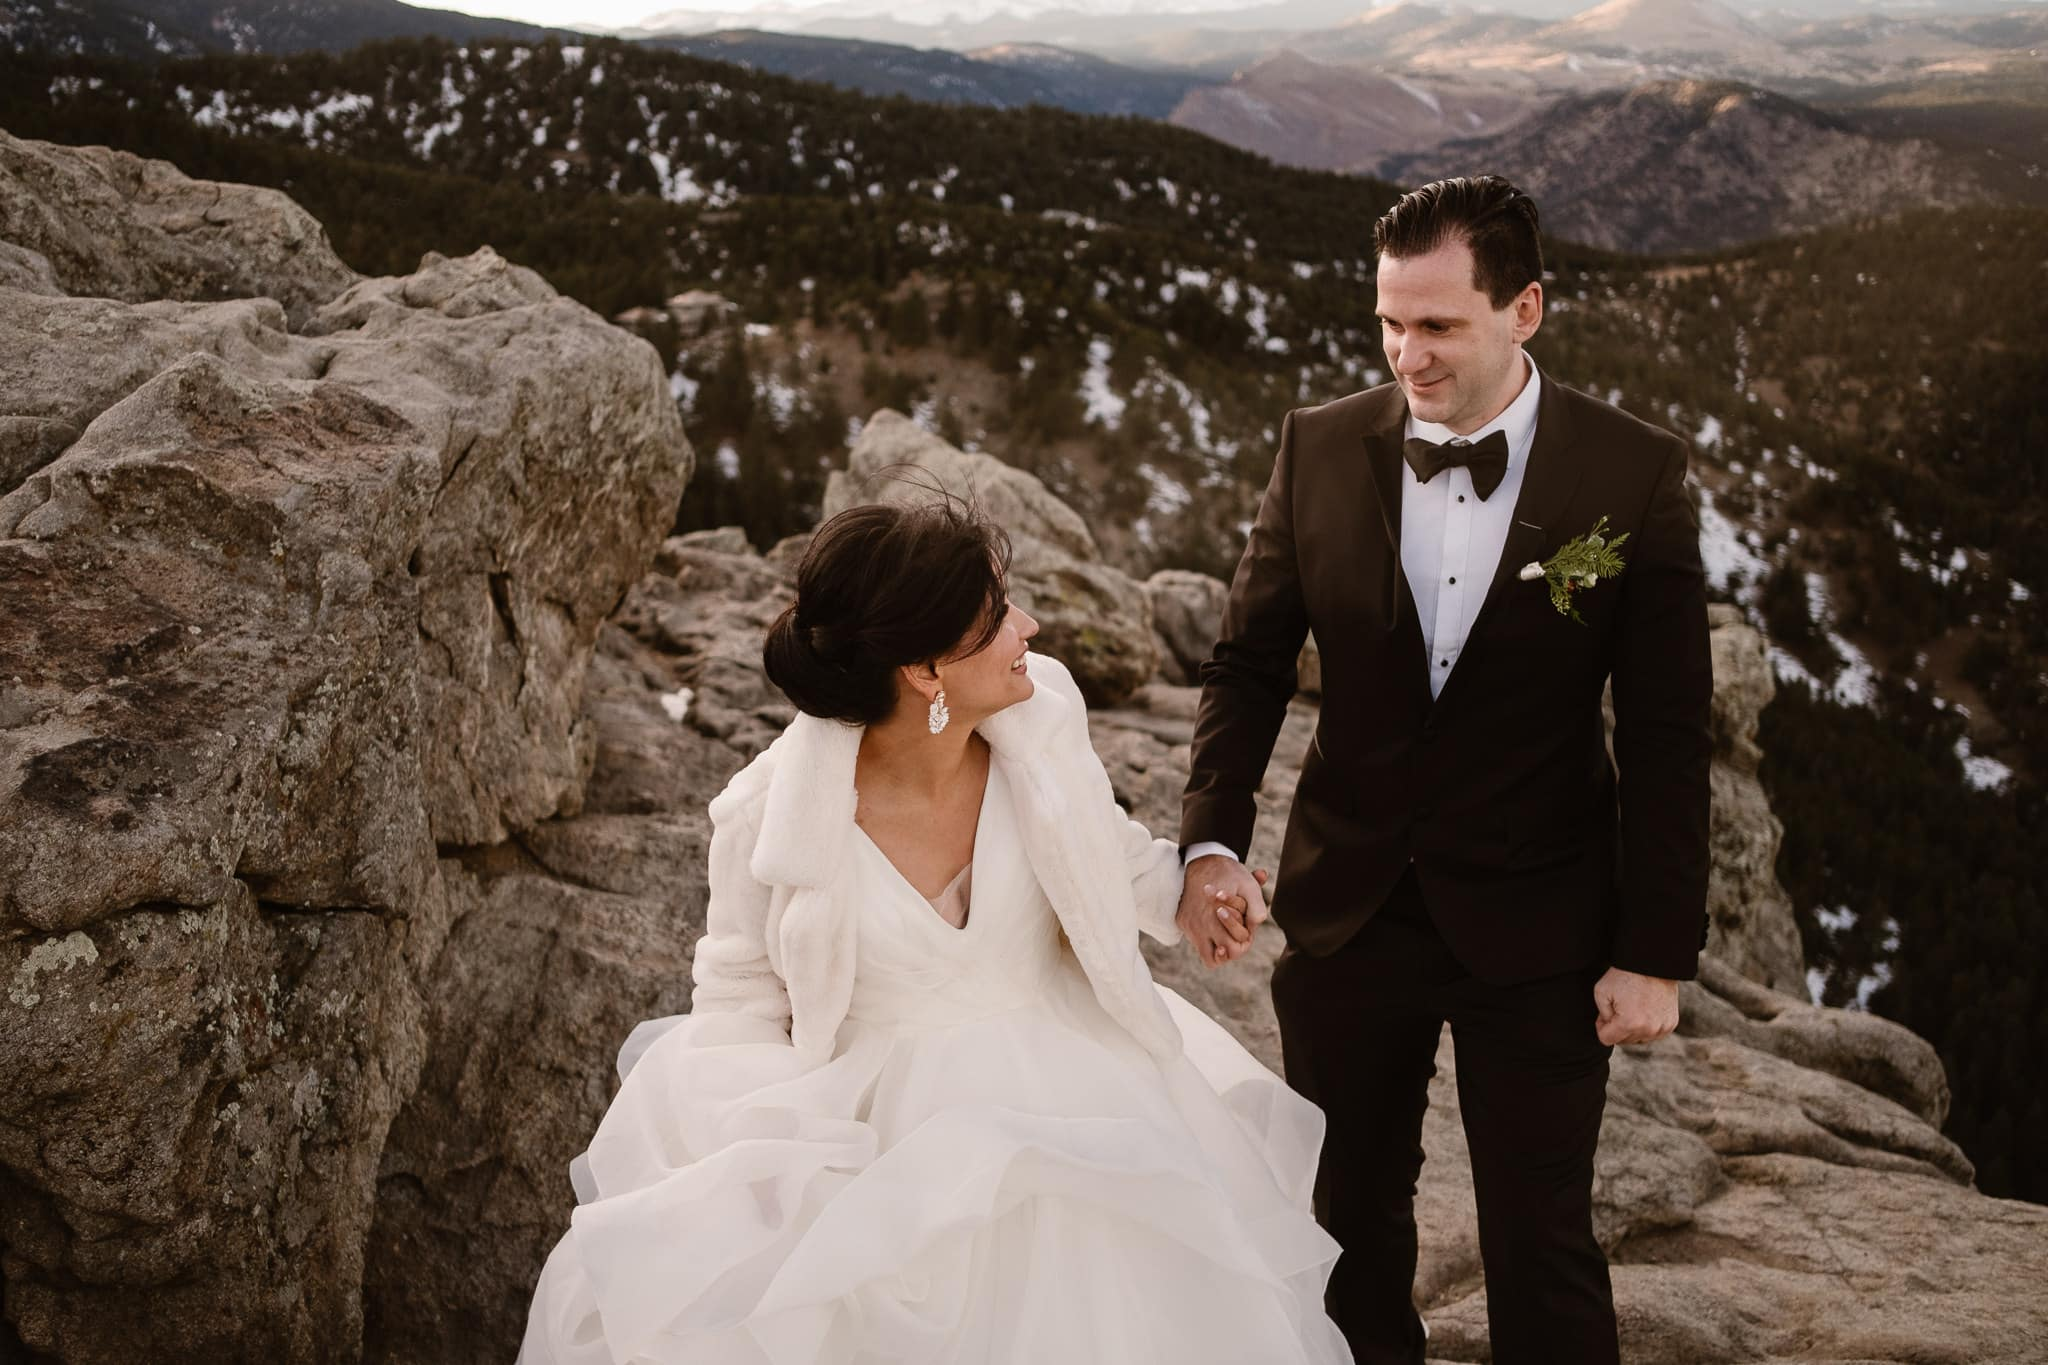 Lost Gulch wedding portraits of bride and groom, St Julien wedding with mountain portraits at sunset, Boulder wedding photographer, Colorado wedding photographer